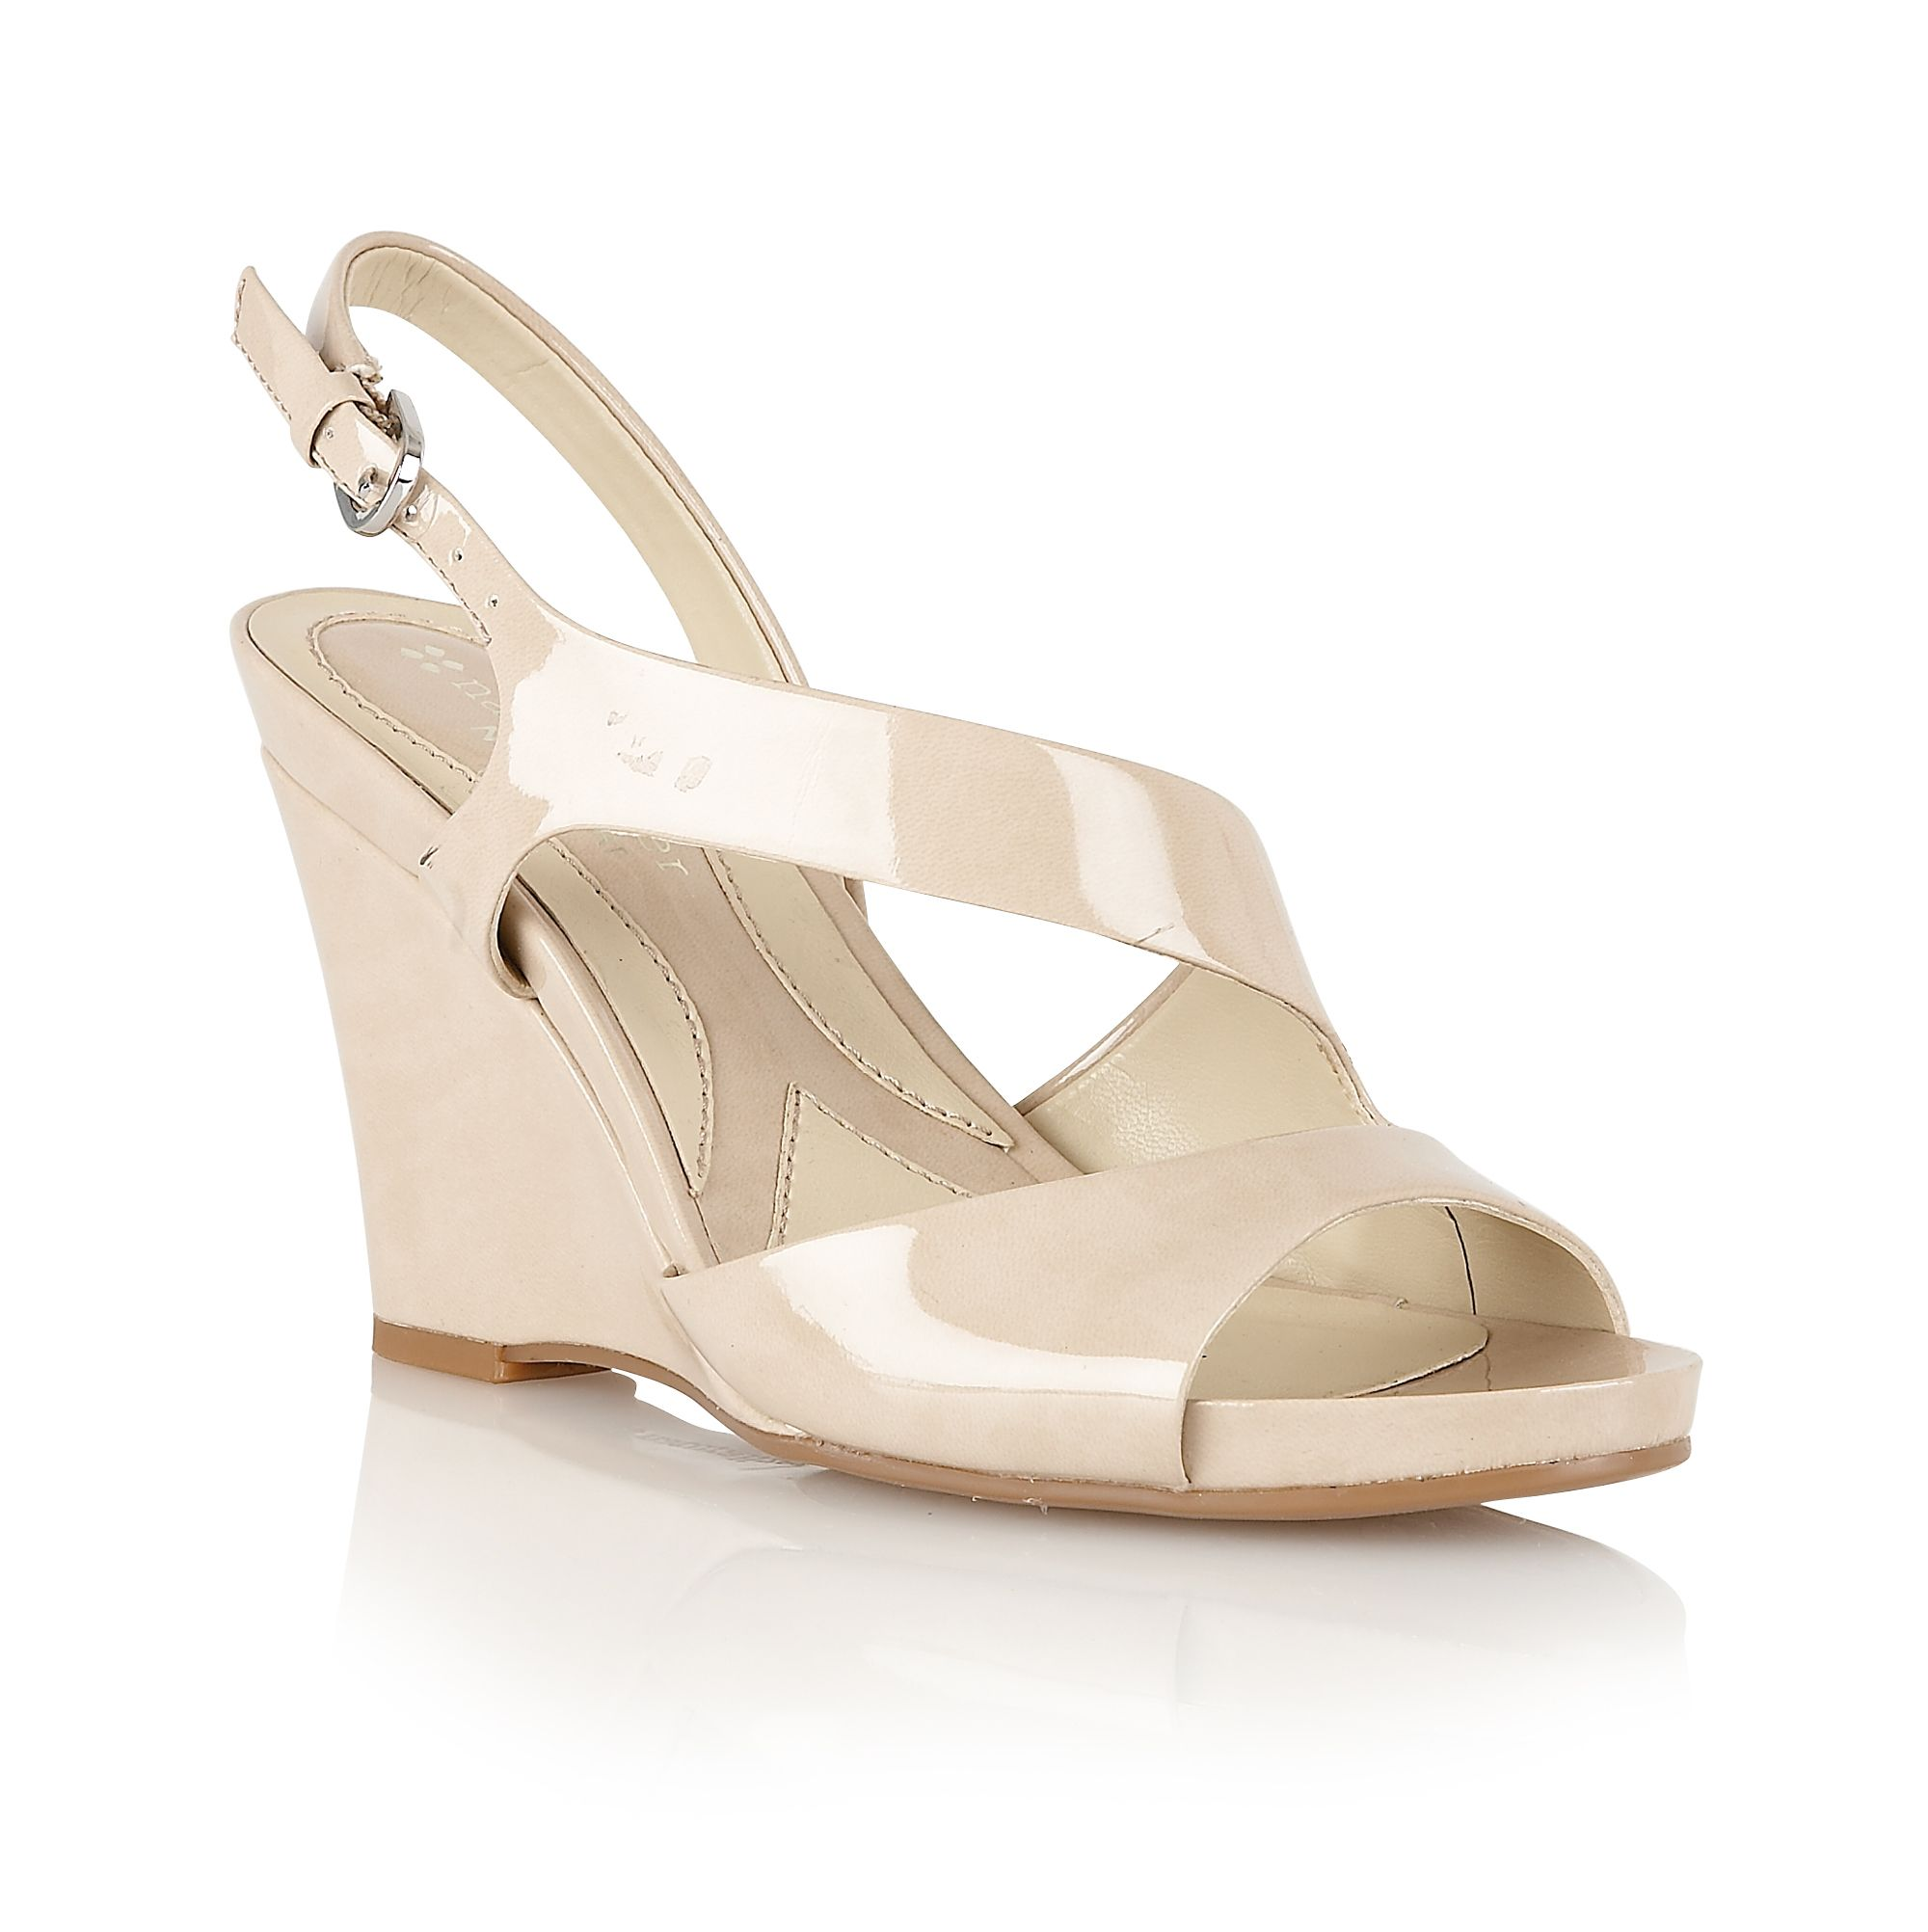 Bandelle casual sandals